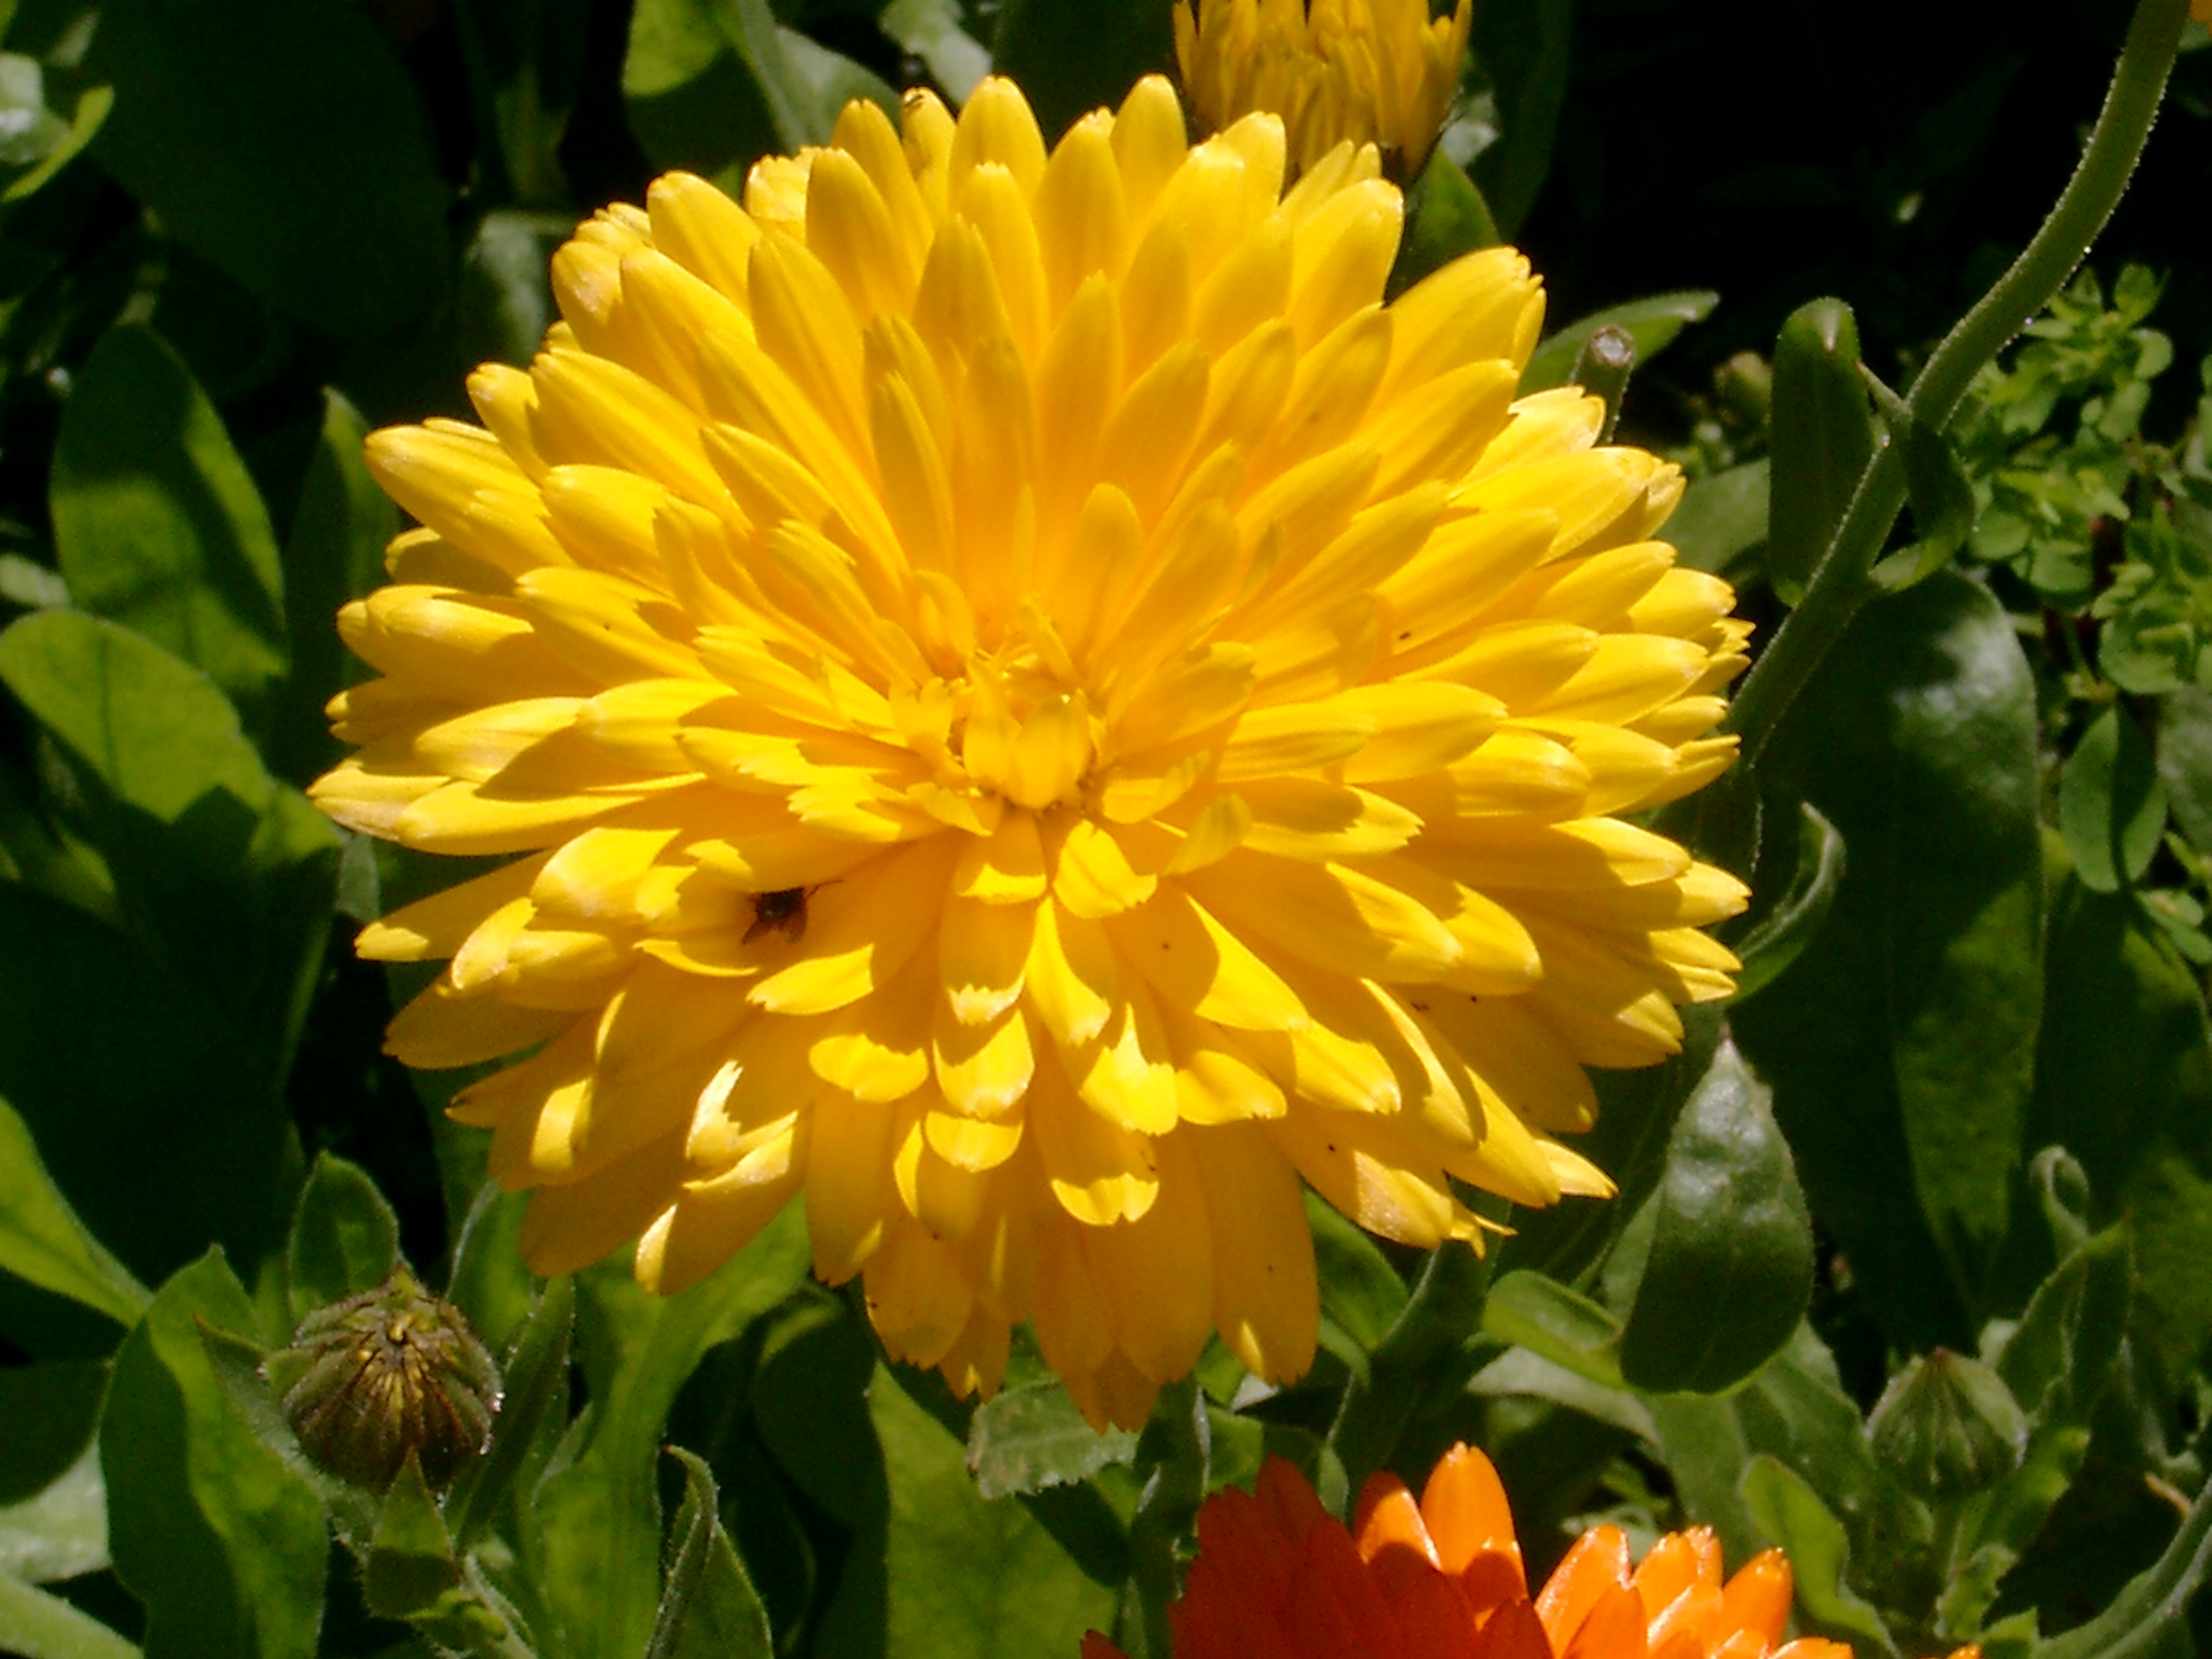 Types of yellow flowers 9 wide wallpaper hdflowerwallpaper types of yellow flowers hd wallpaper mightylinksfo